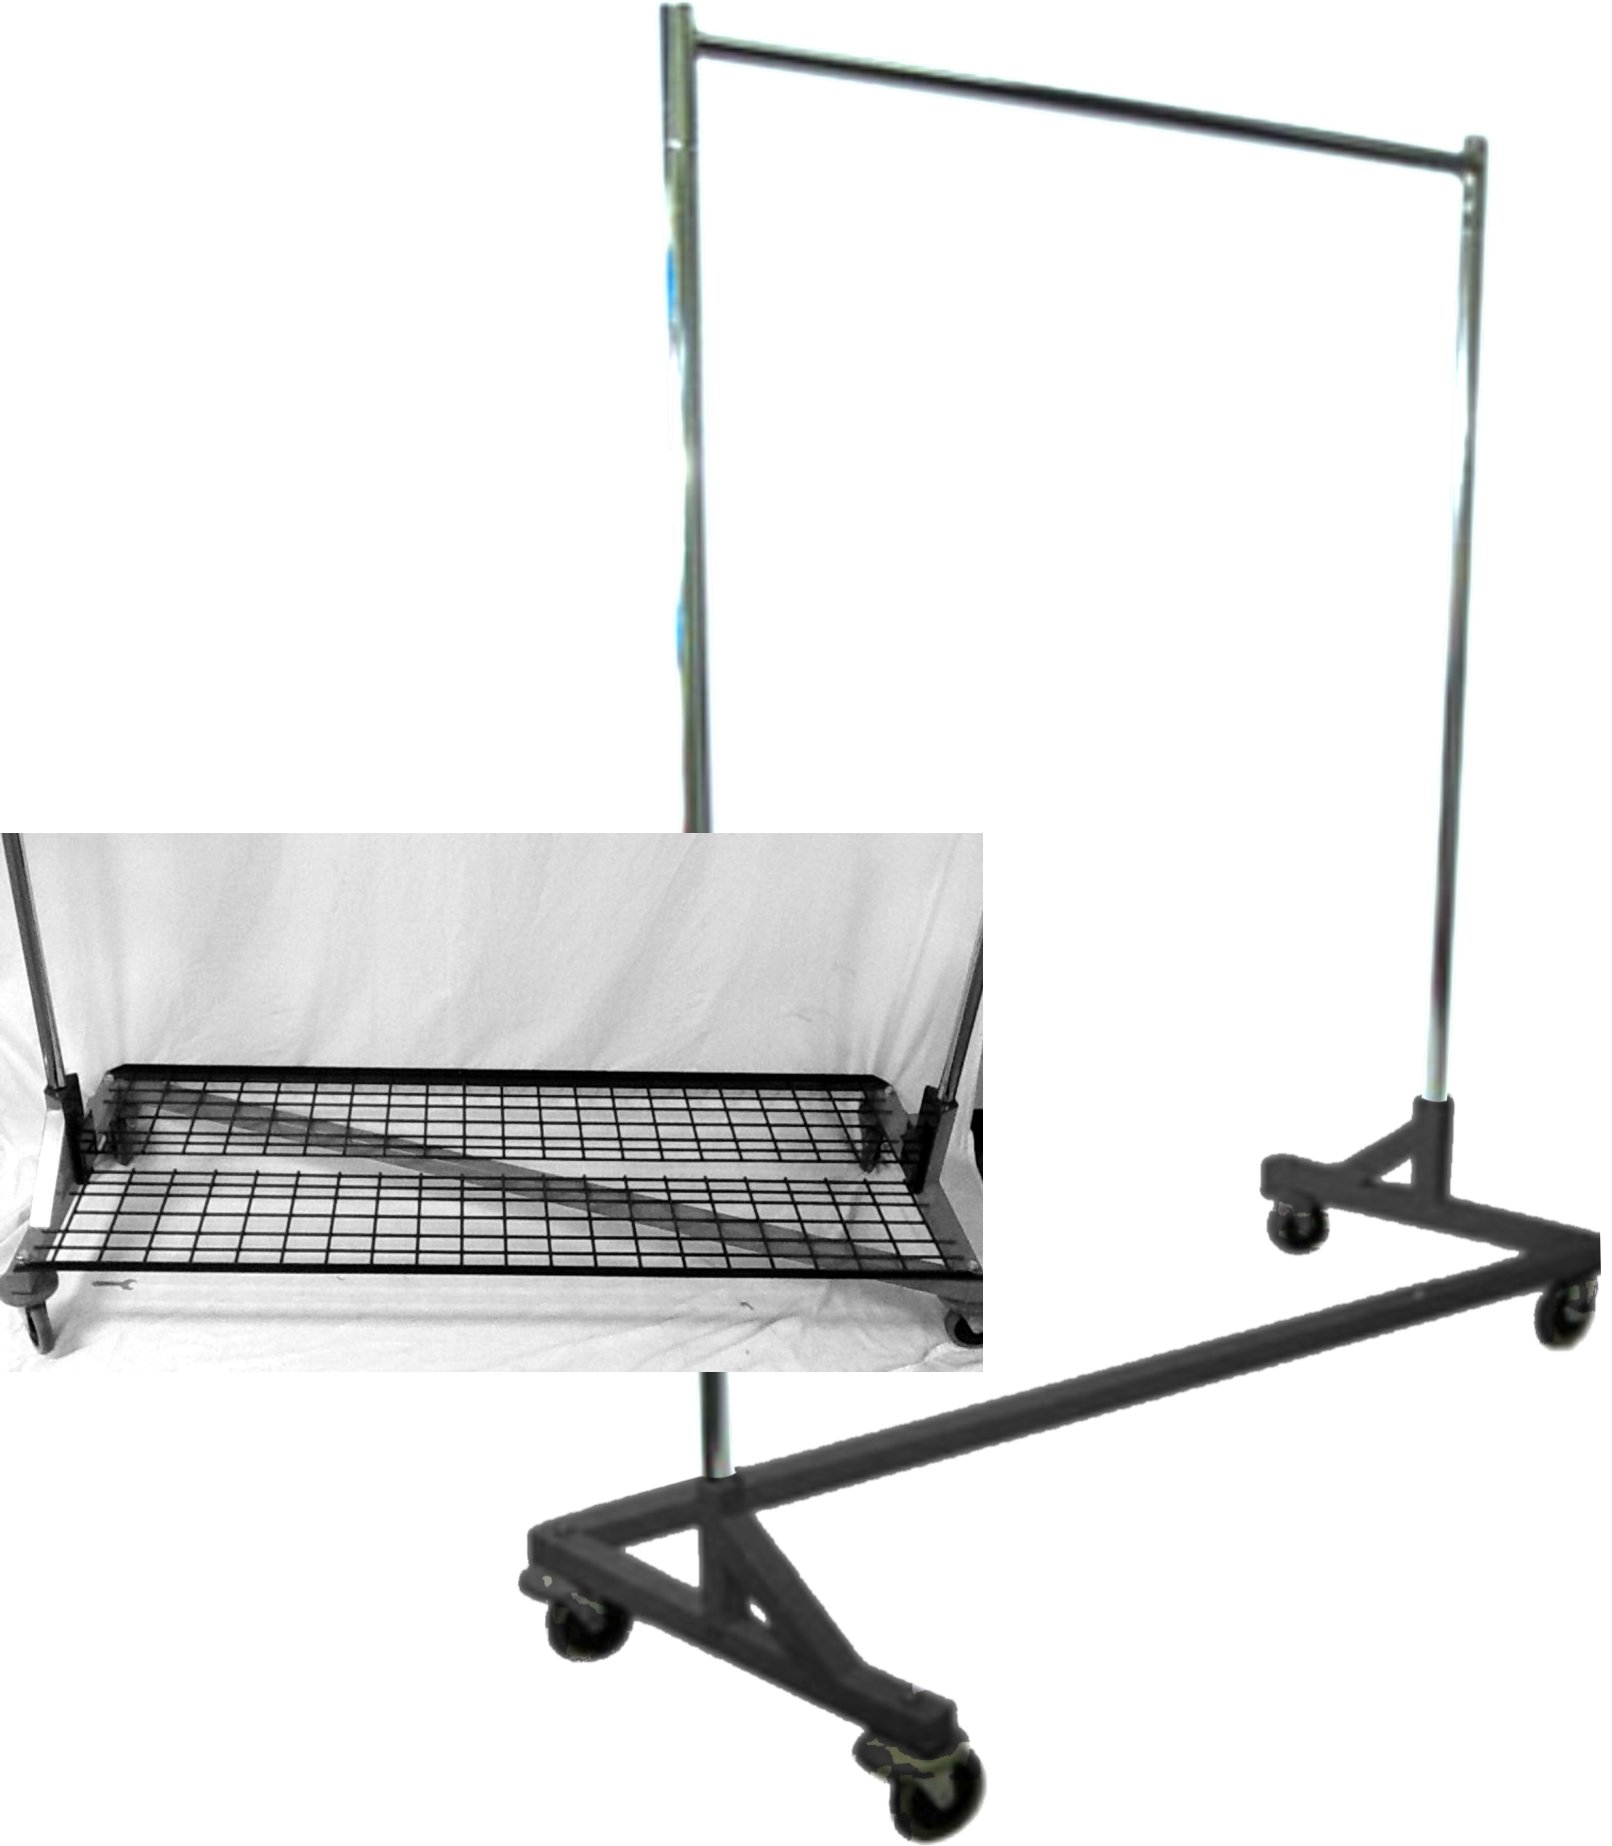 Rolling Z Rack Clothing Clothes Rack Garment Rack with Bottom Shelf Combo in Black